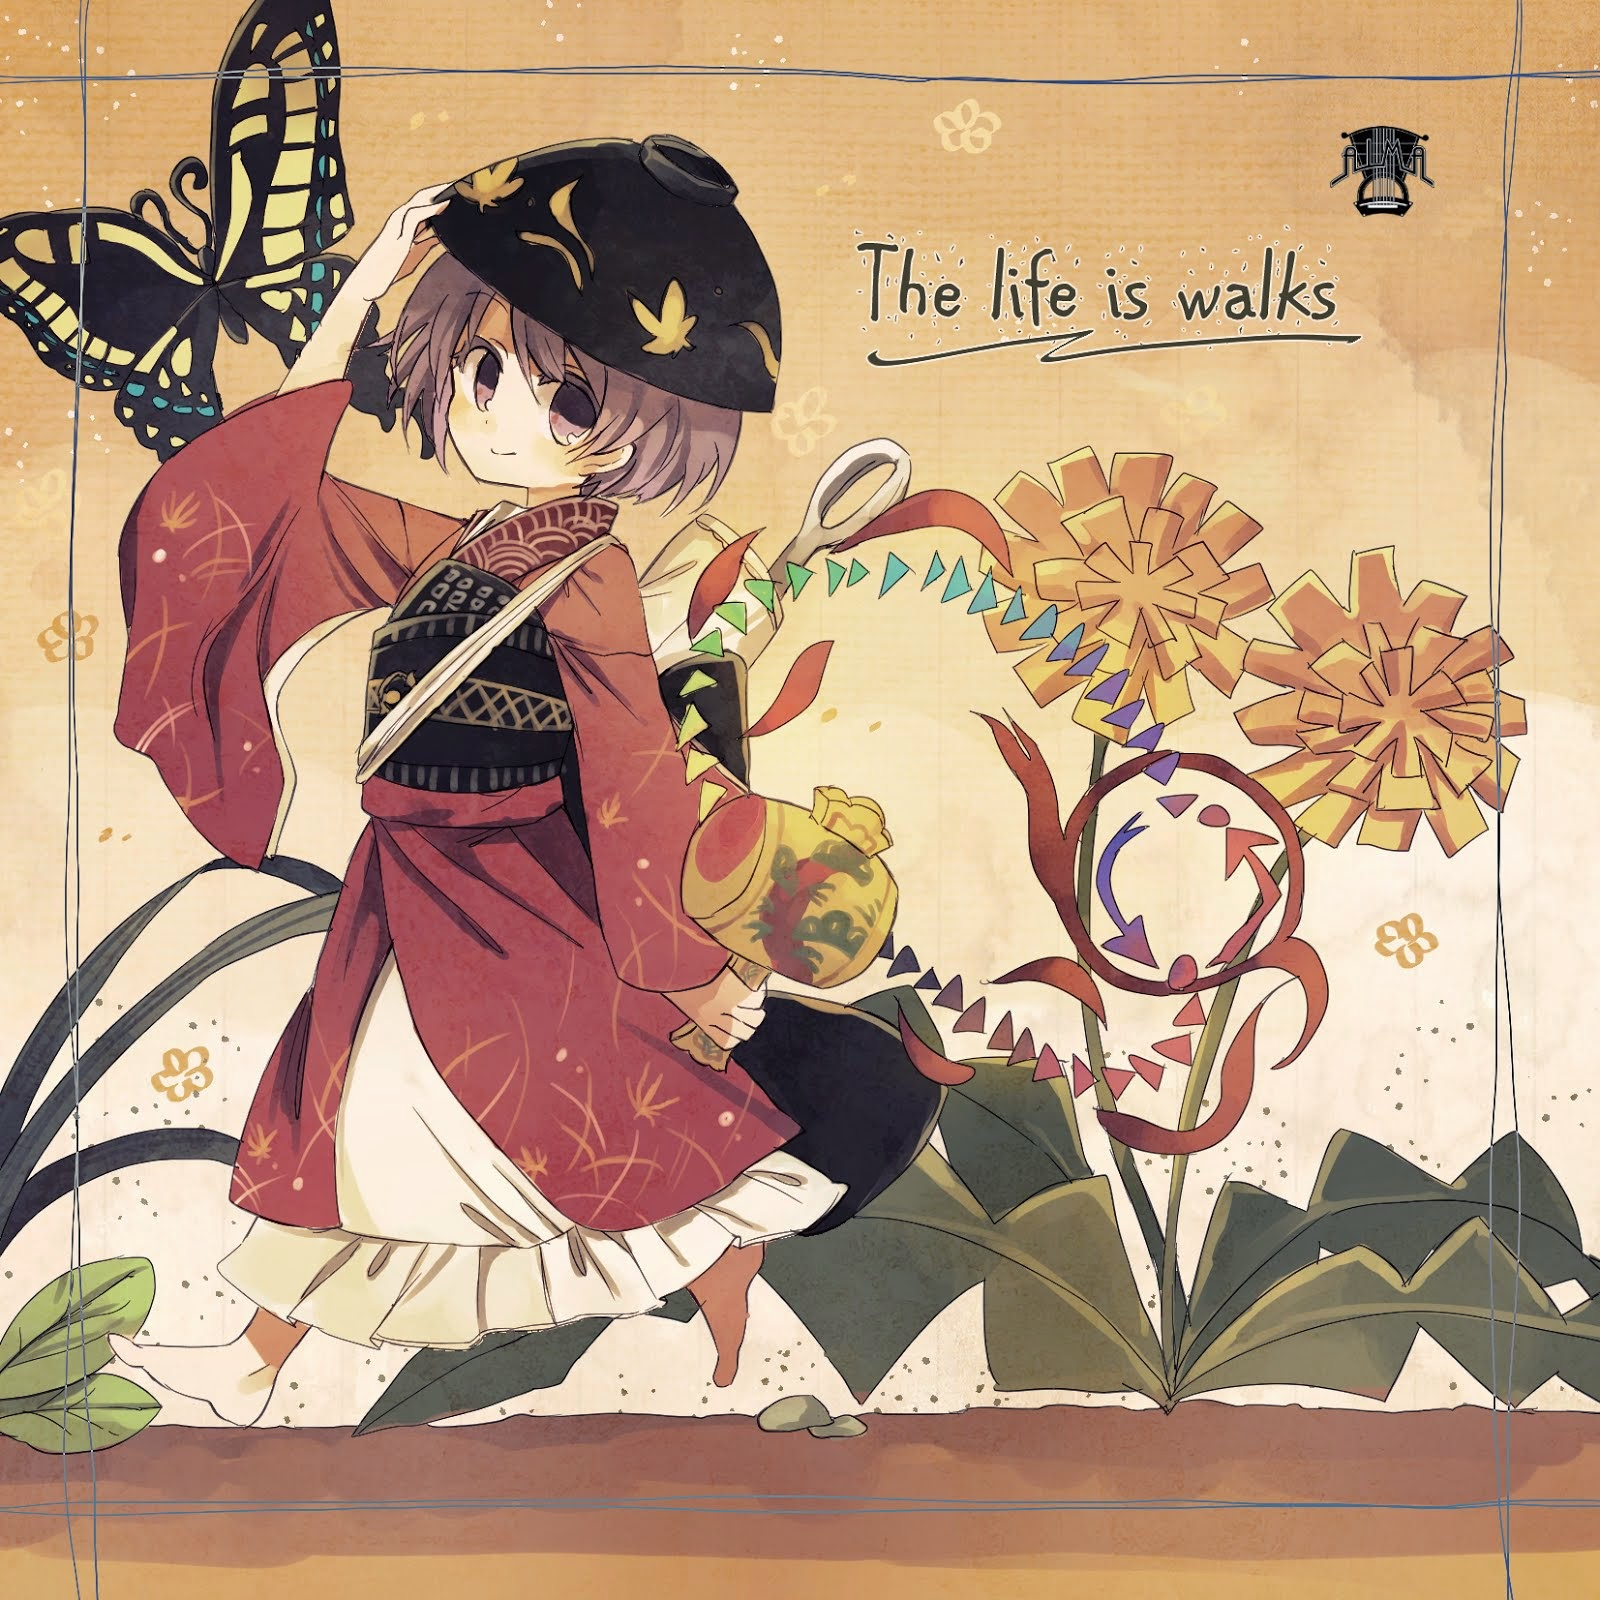 The life is walks